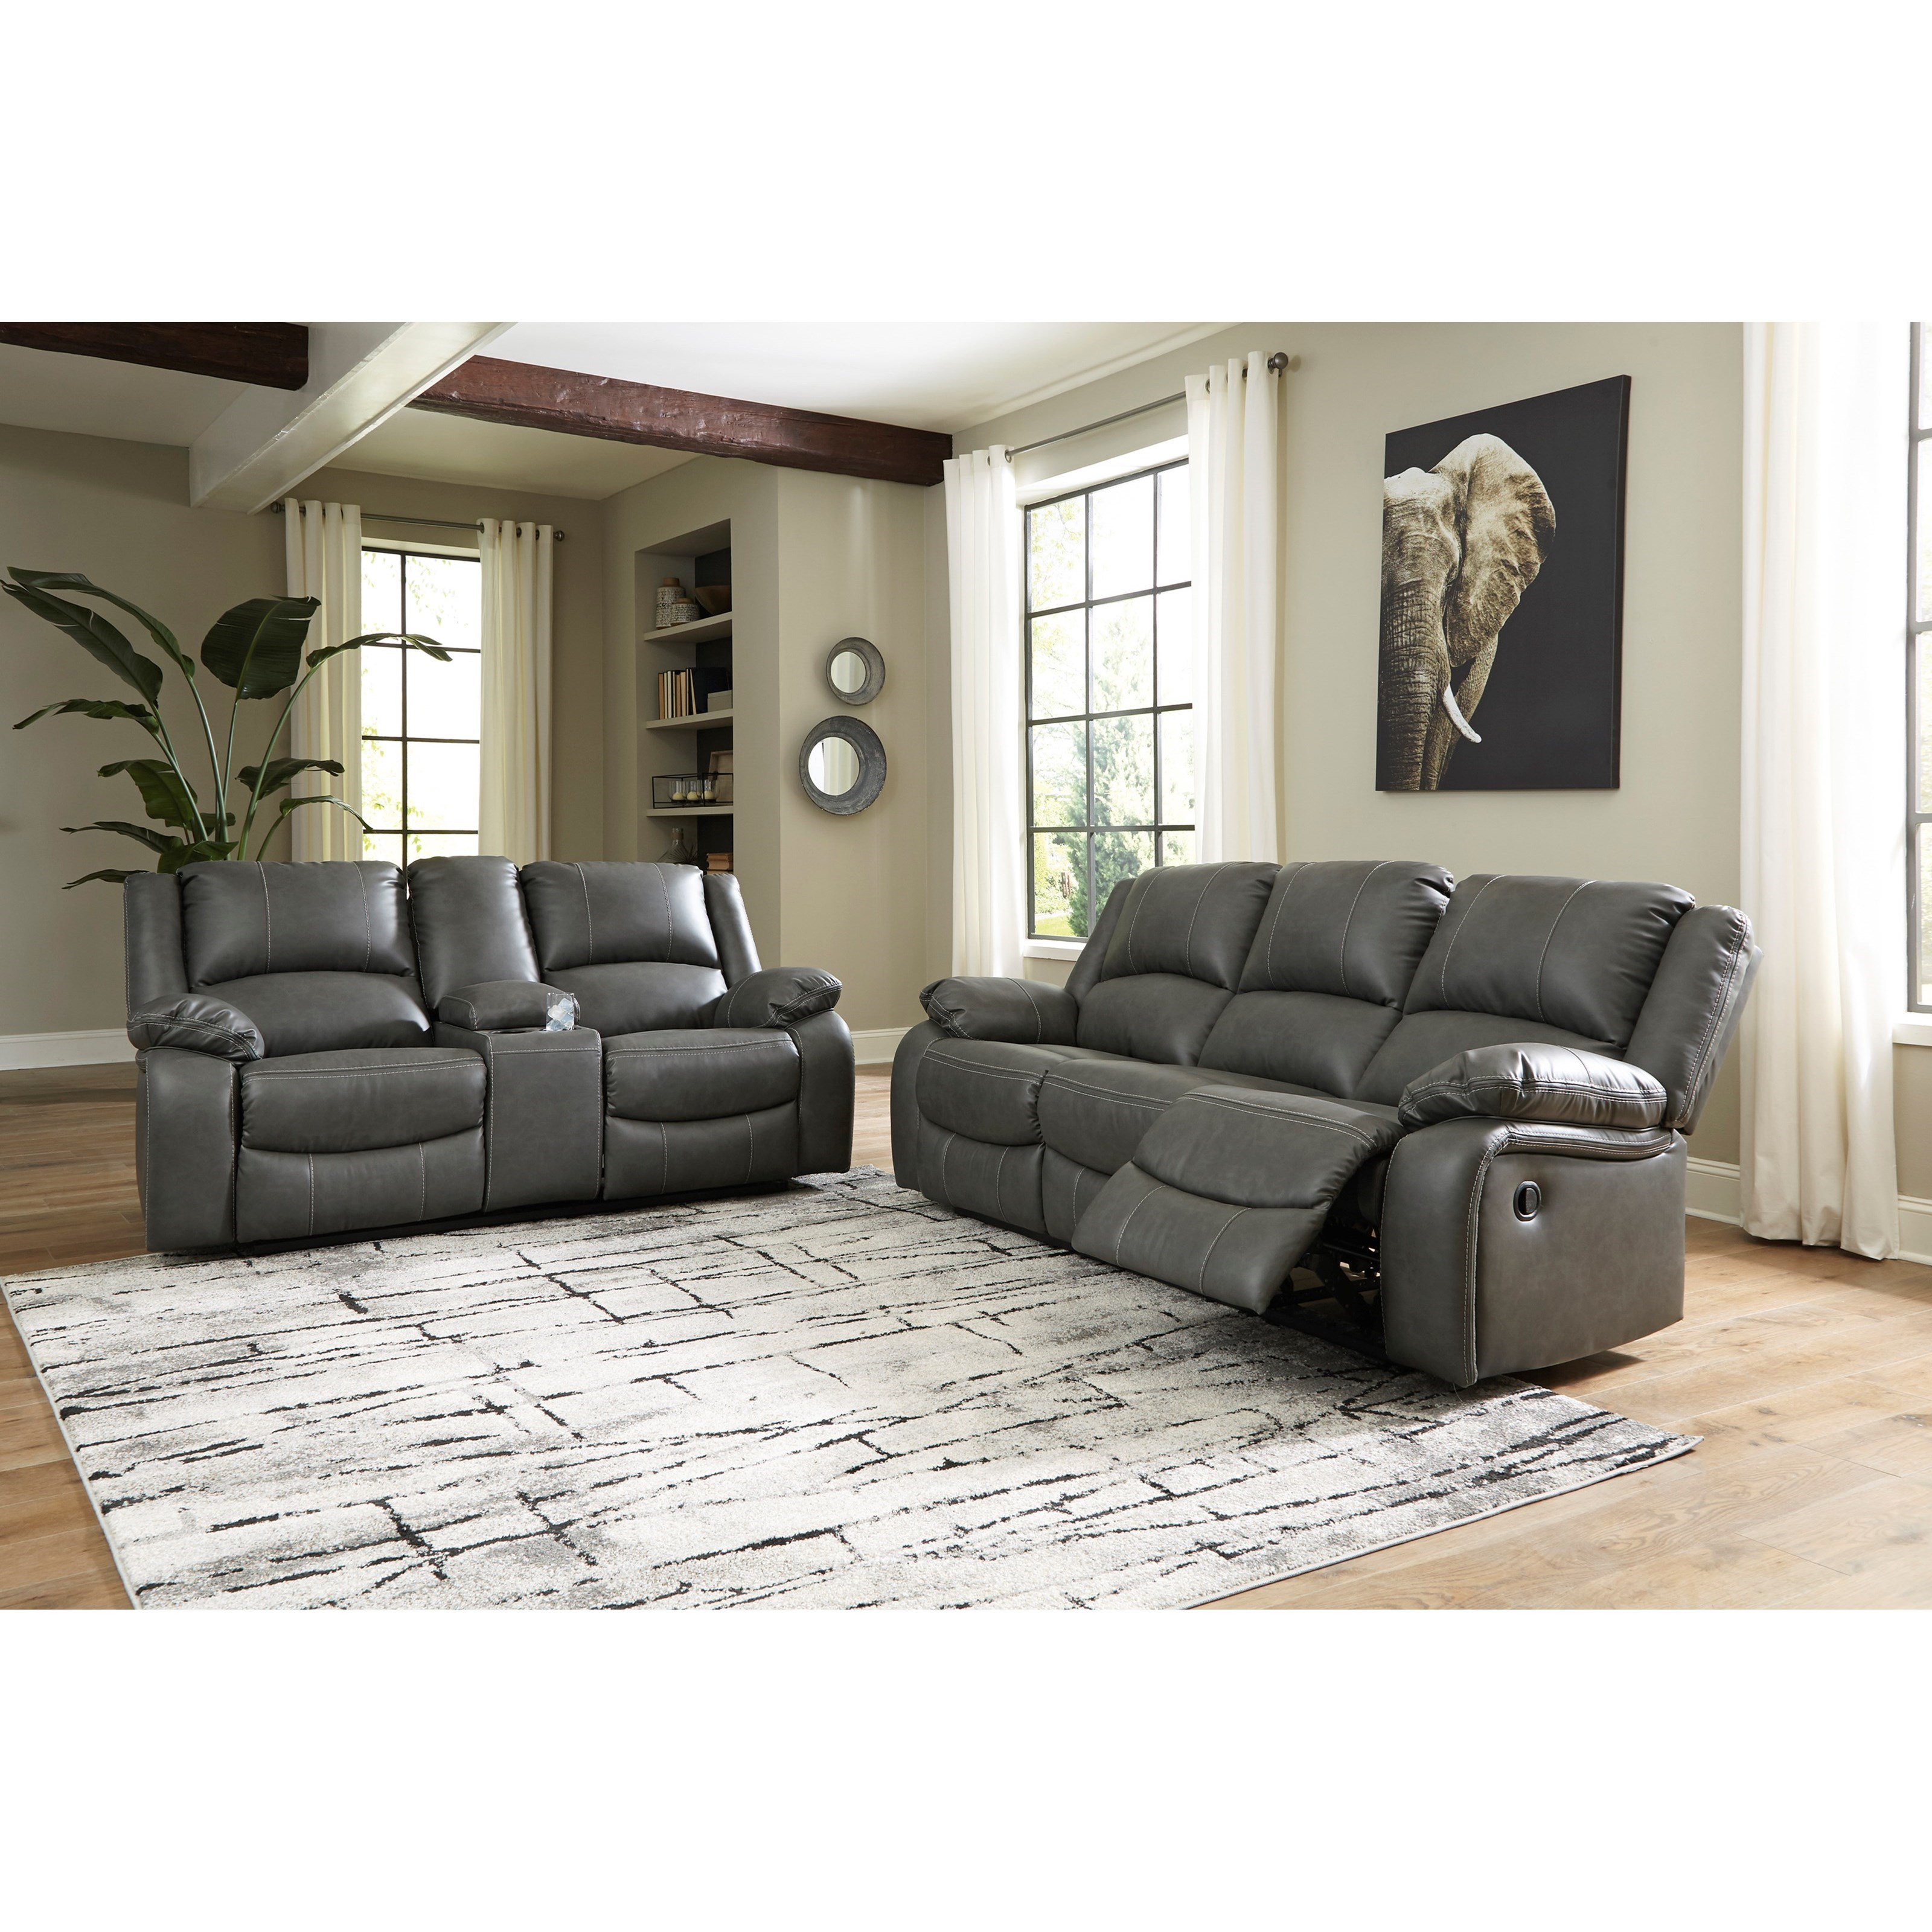 Calderwell Reclining Living Room Group by Signature Design by Ashley at Sam Levitz Outlet